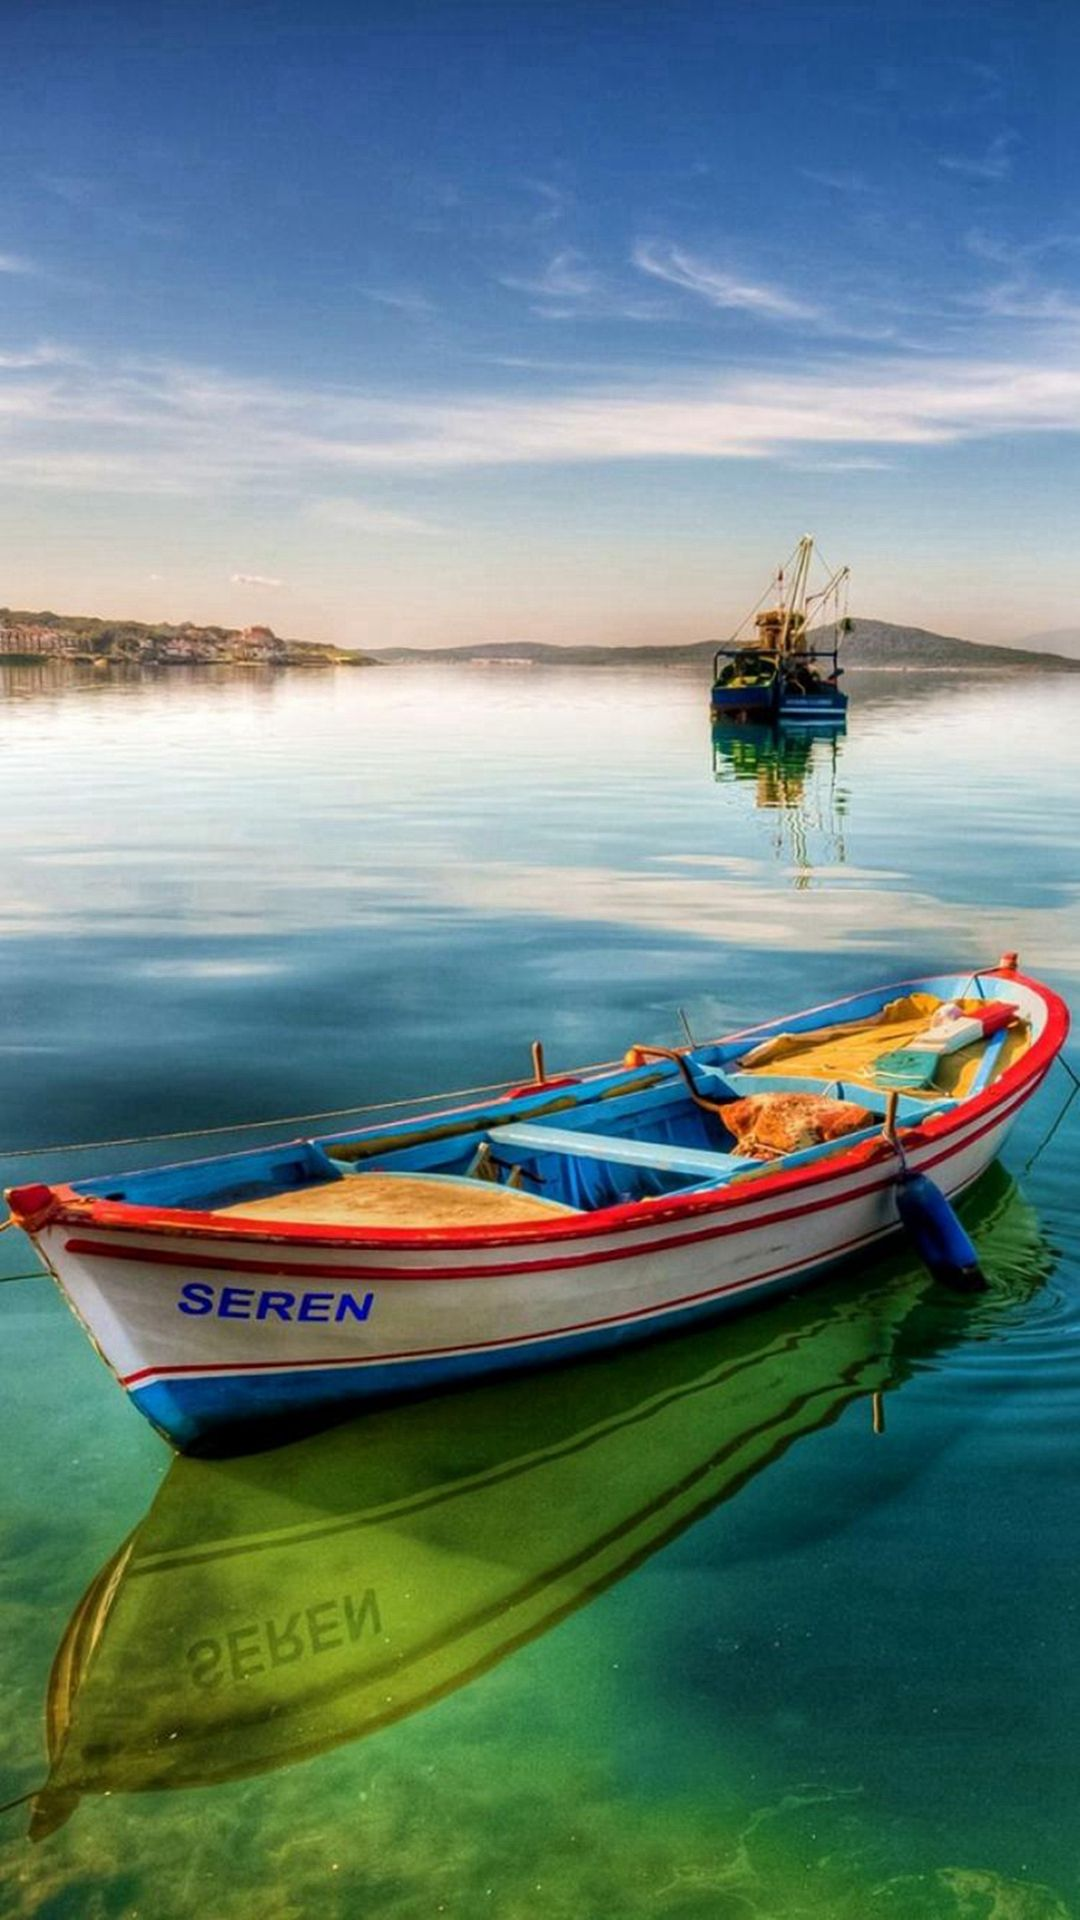 Nature Clear Seren Boat Skyline Scenery iPhone 6 wallpaper